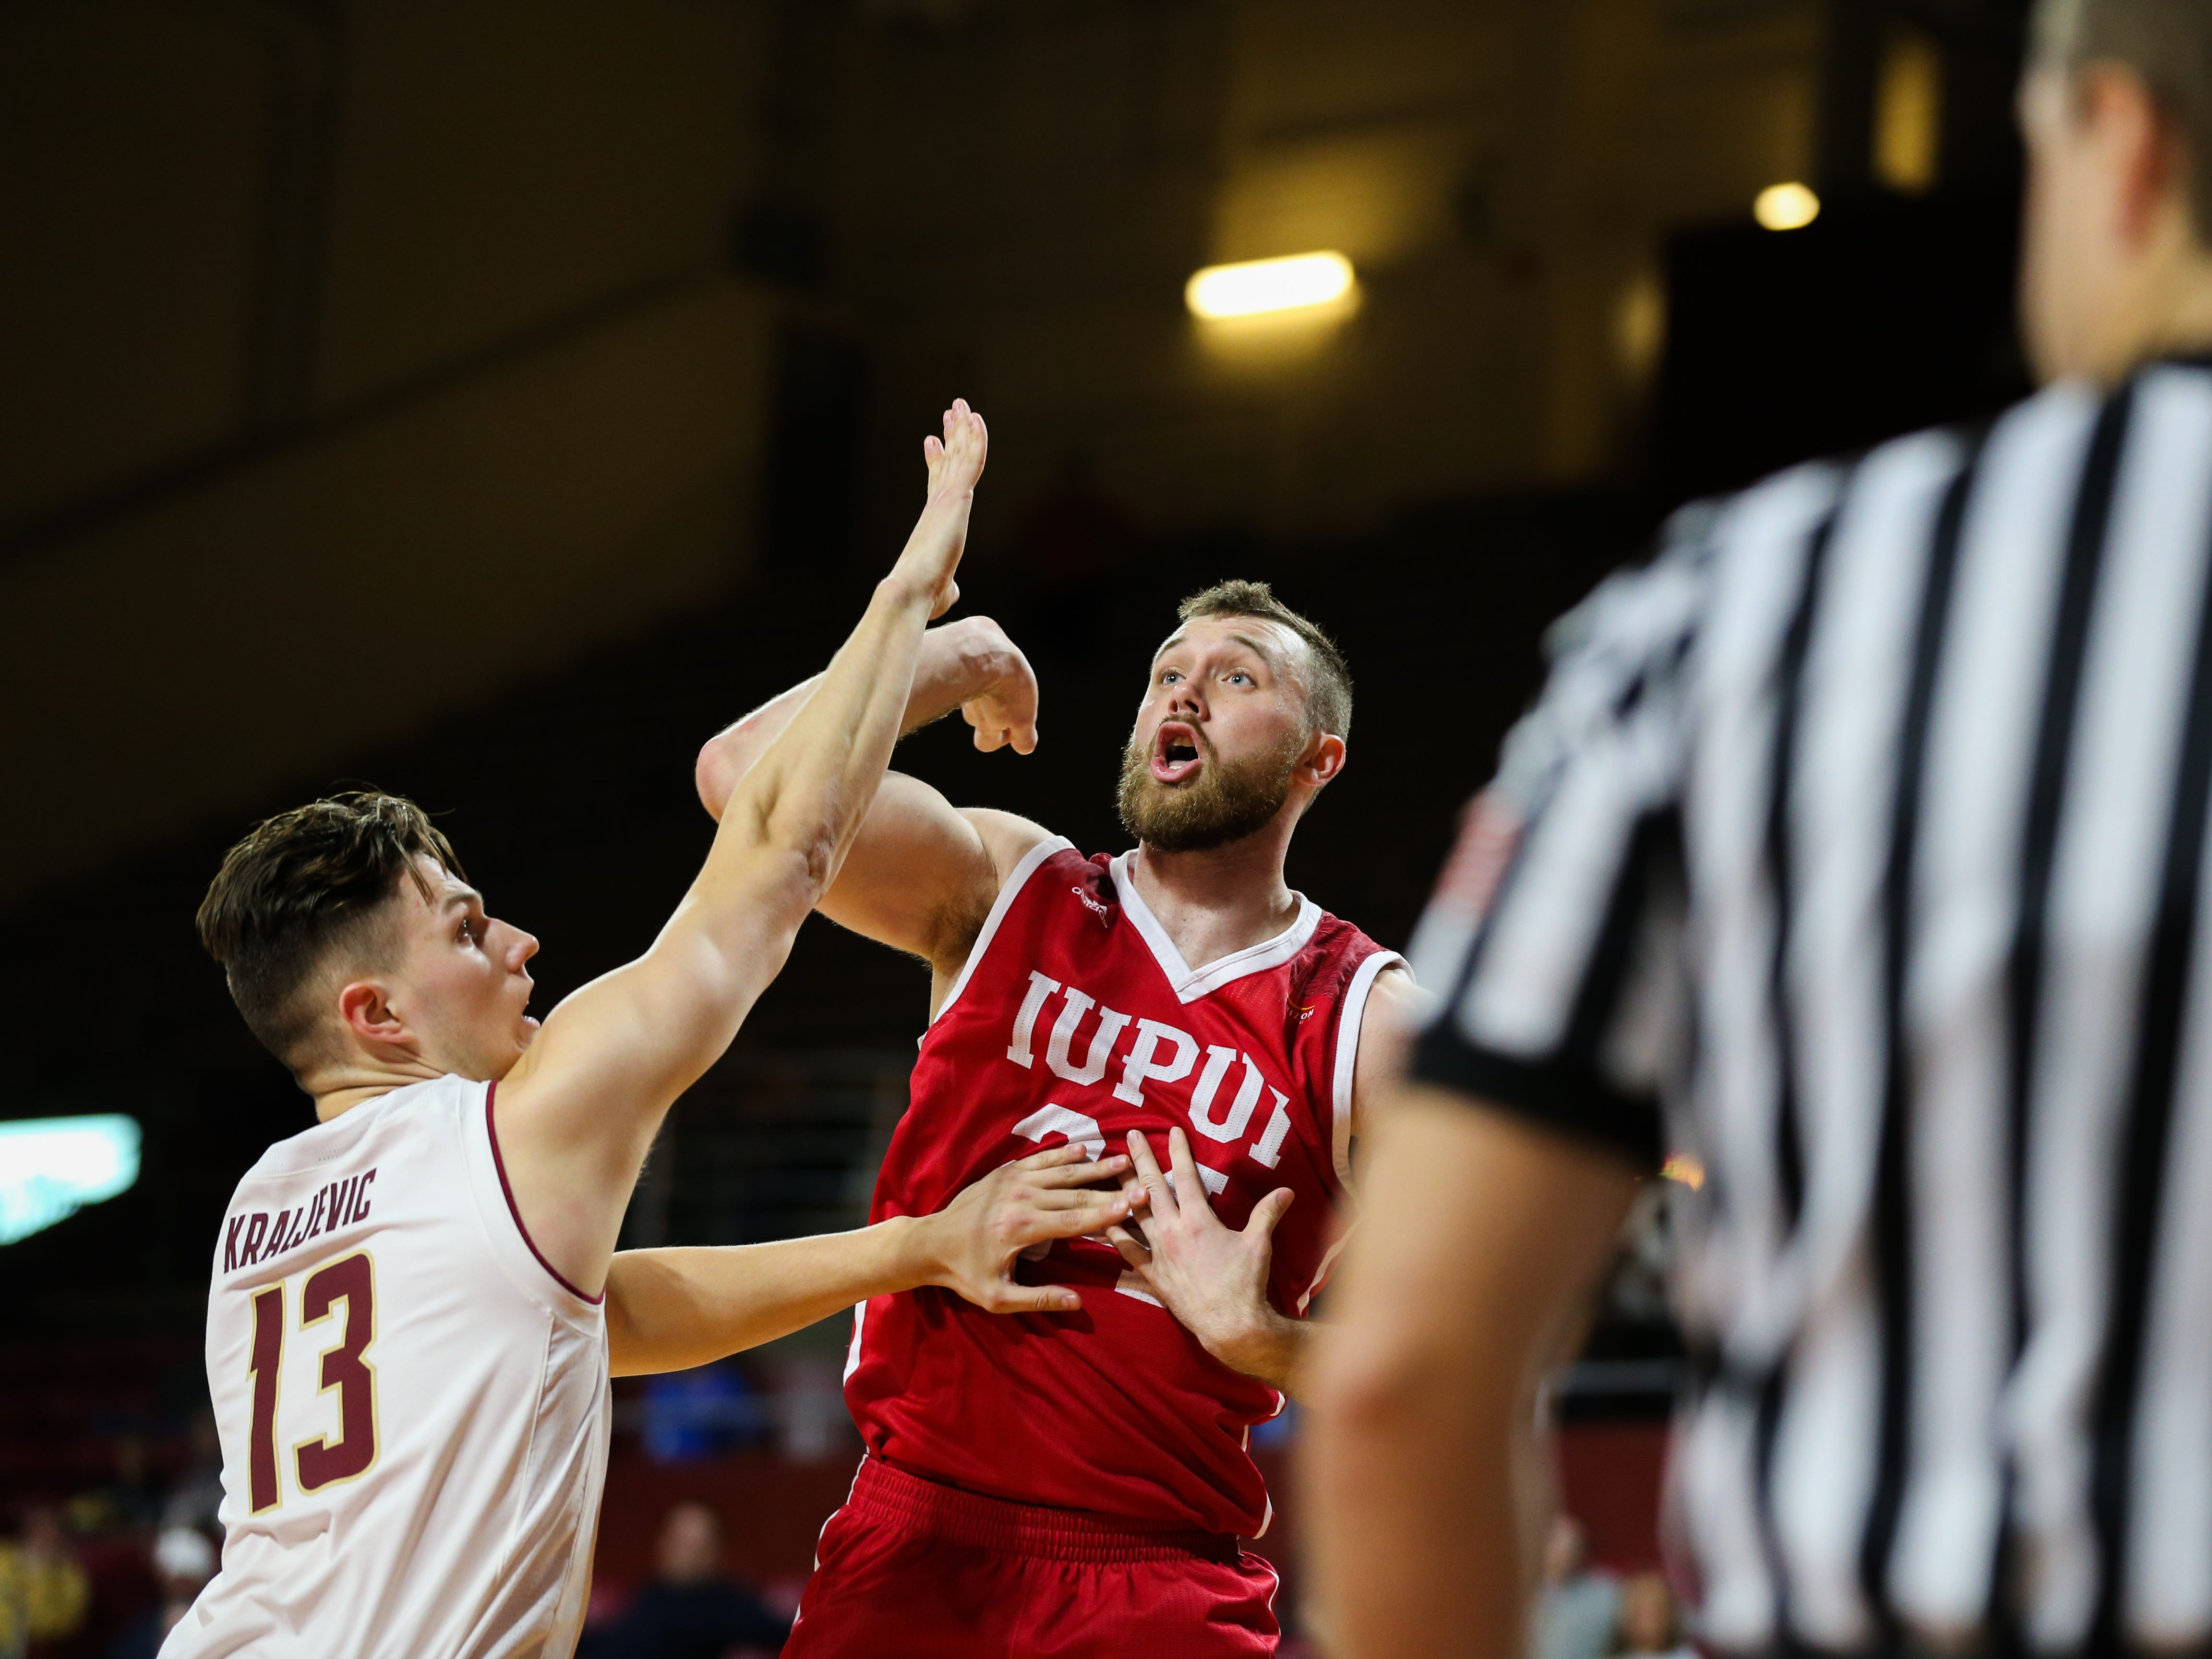 IUPUI forward Evan Hall lets go a jump shot against Boston College.